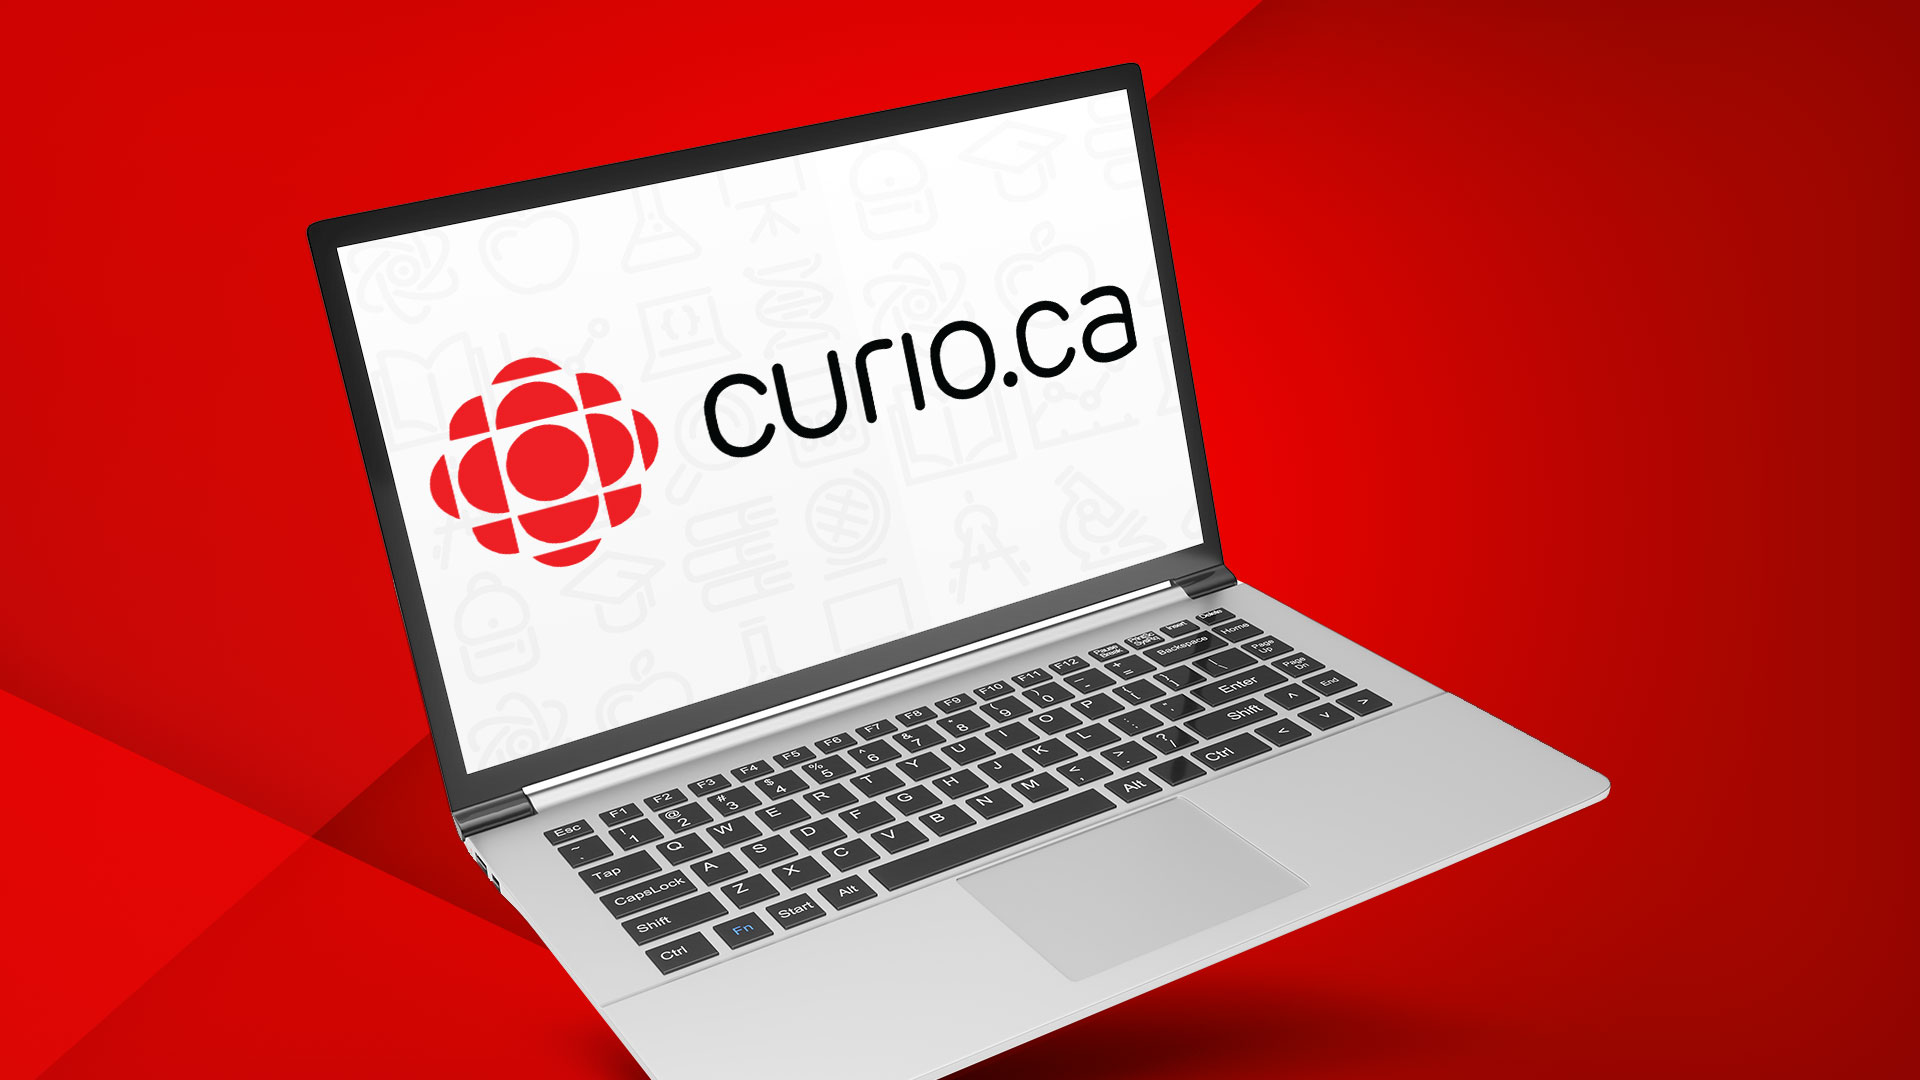 Commercial Services - CBC/Radio-Canada